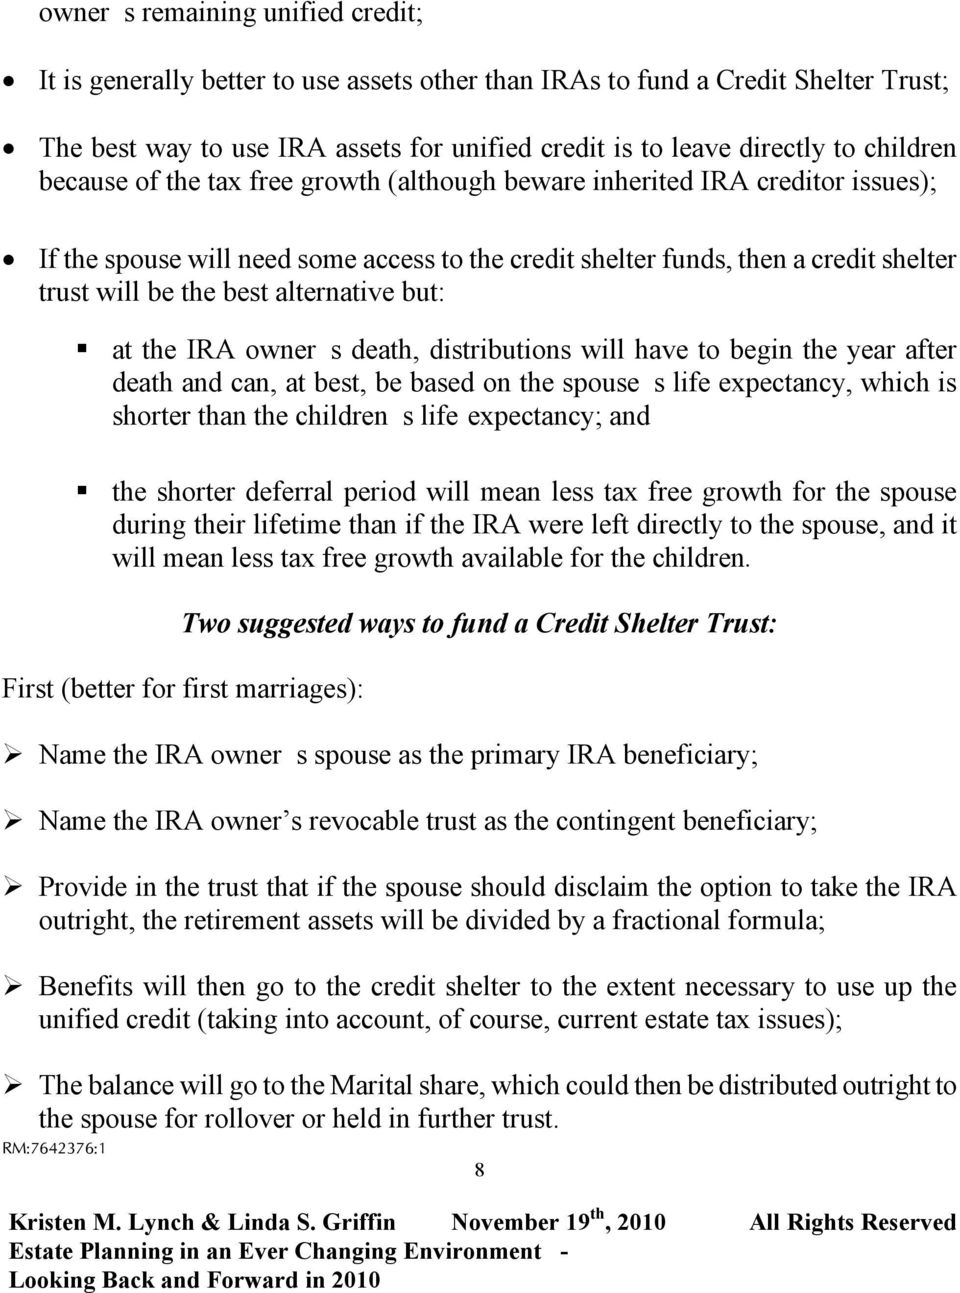 alternative but: at the IRA owner s death, distributions will have to begin the year after death and can, at best, be based on the spouse s life expectancy, which is shorter than the children s life